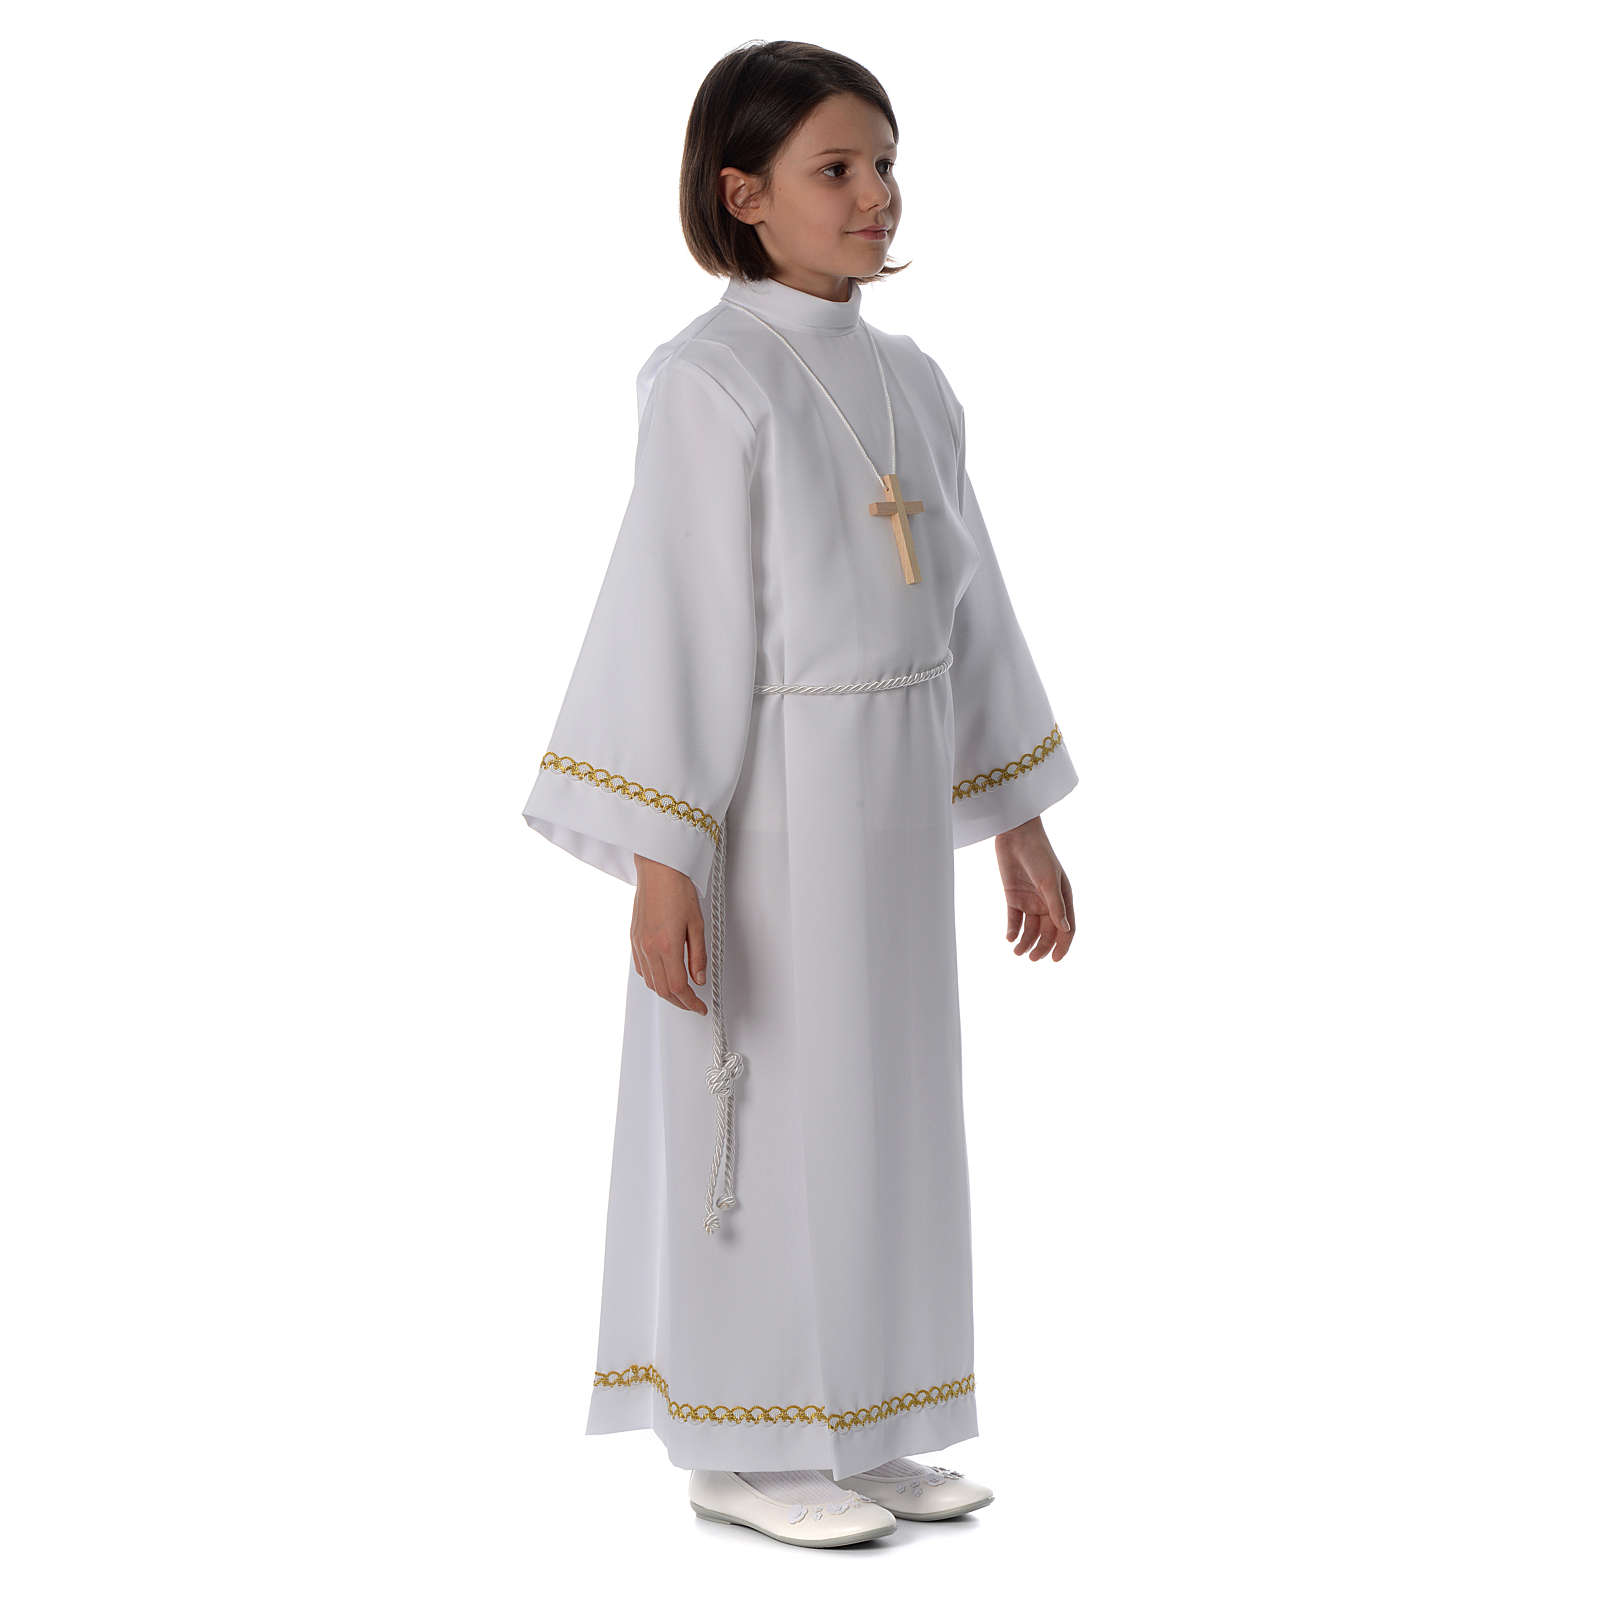 First Communion alb with pleats and braided border on hem and sleeves 4